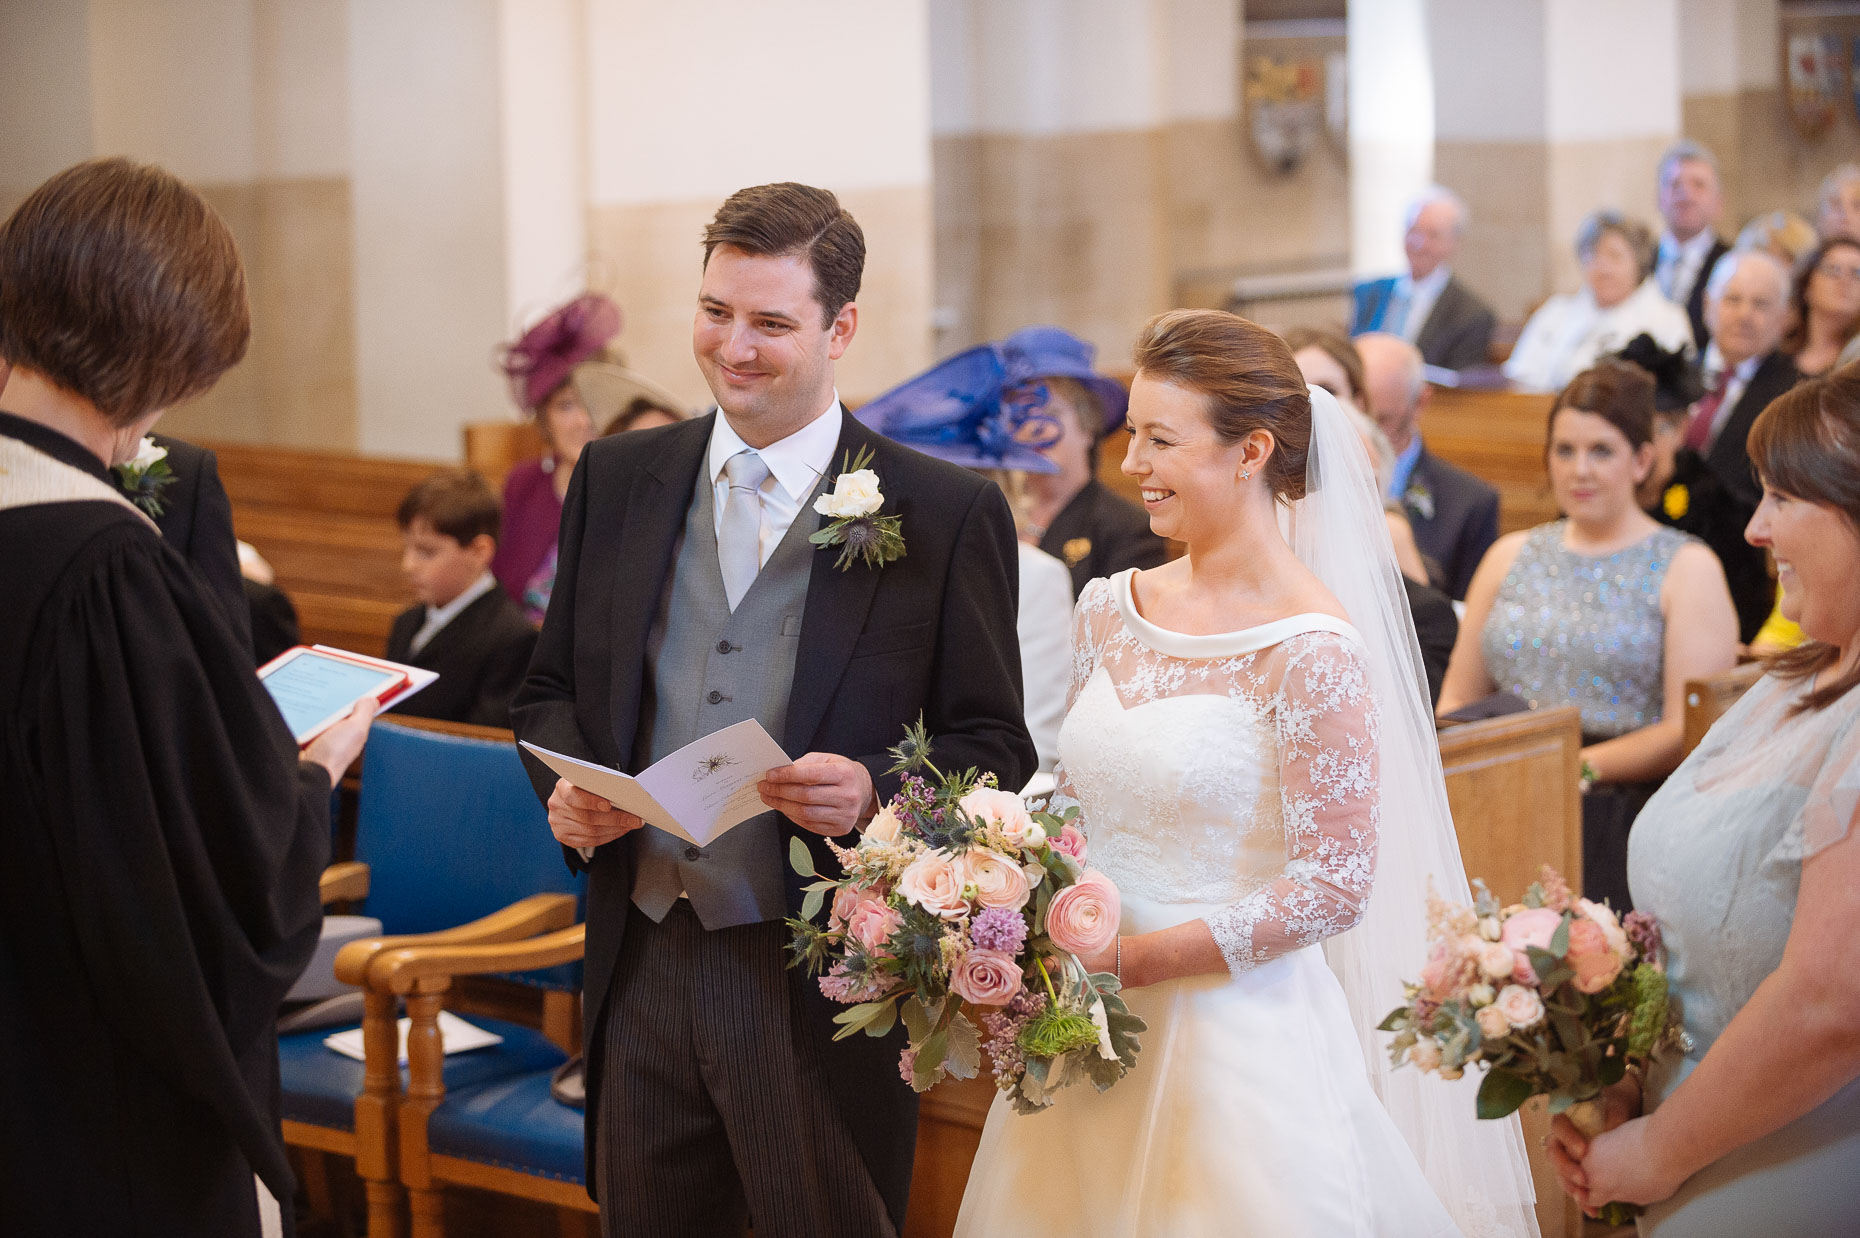 st-columba-church-wedding-ceremony-london-photographer-09